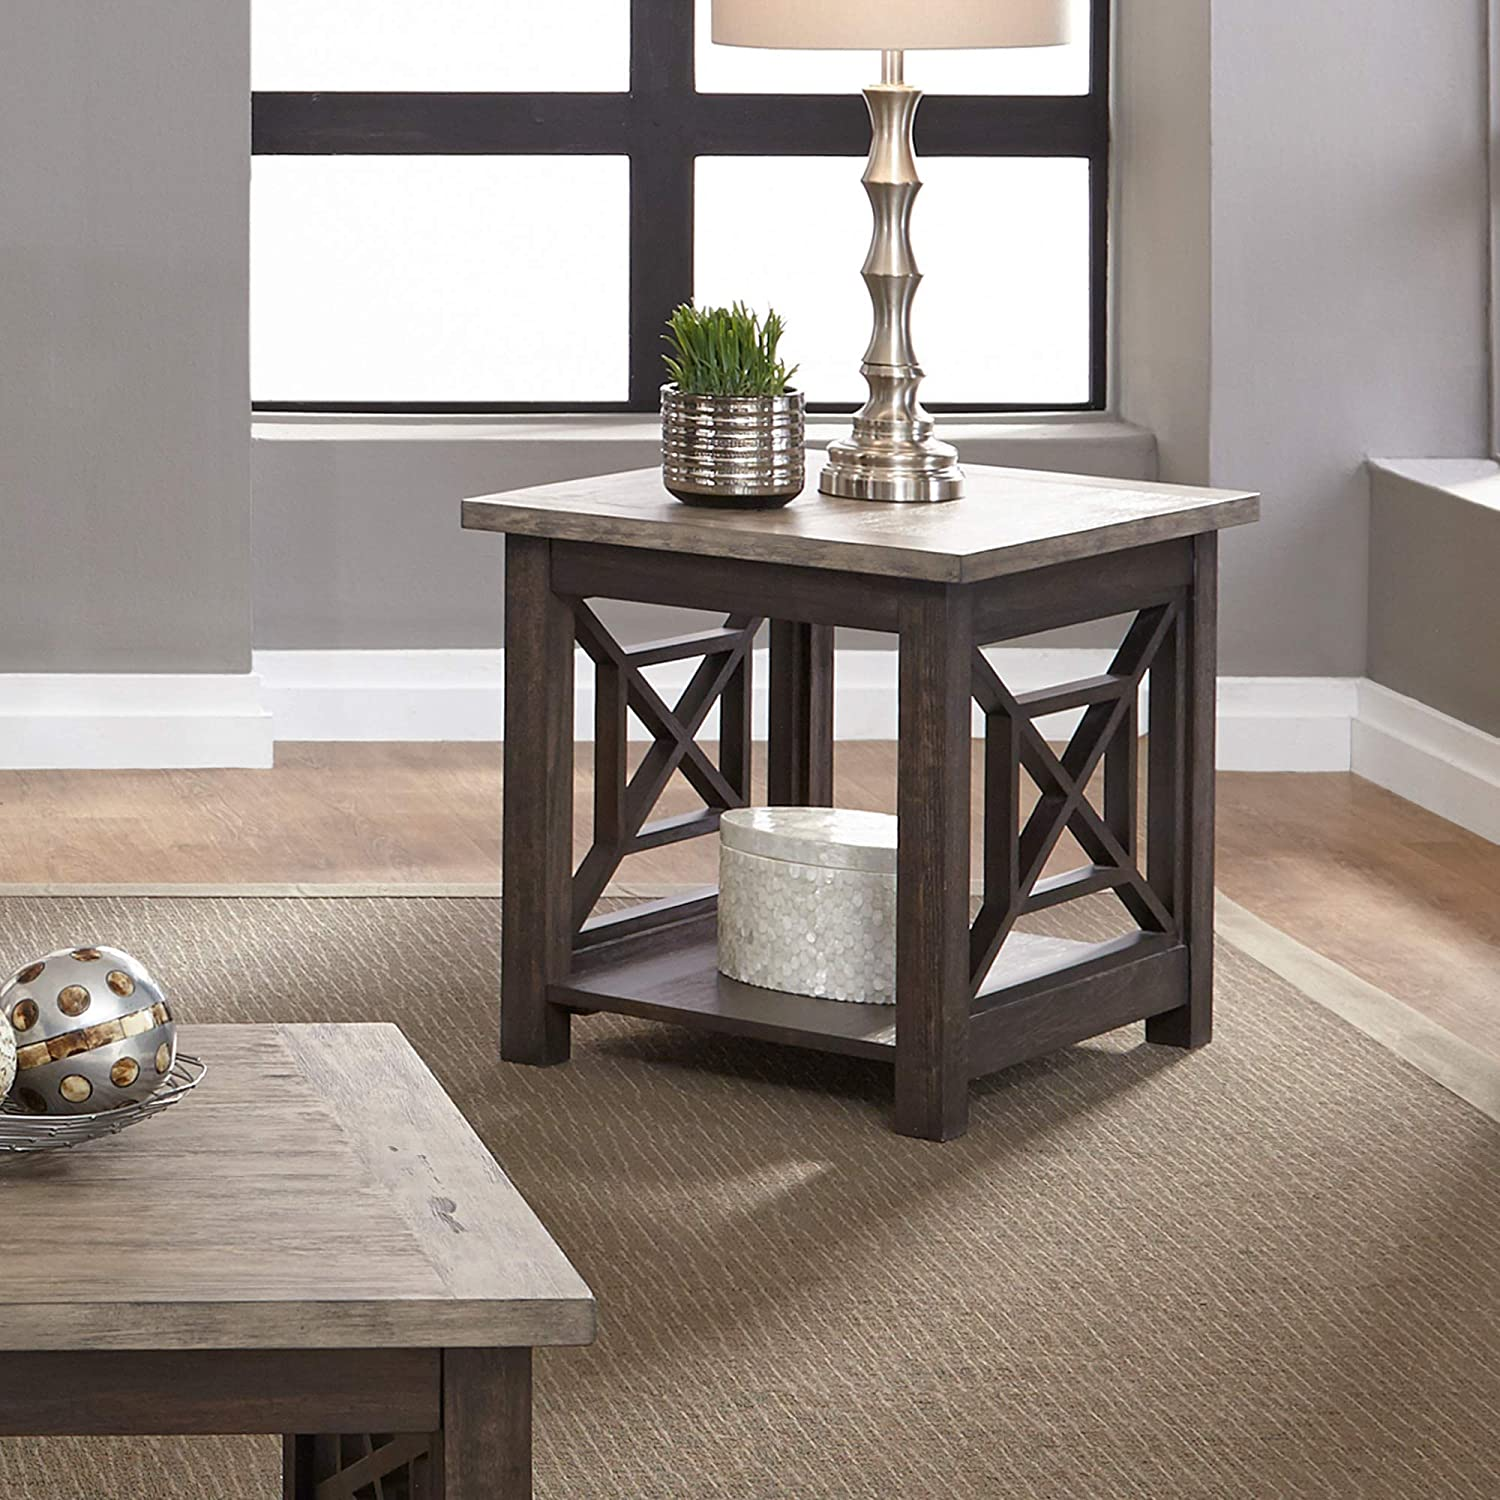 Liberty Furniture Industries Heatherbrook Occasional End Table, W23 x D27 x H24, Black